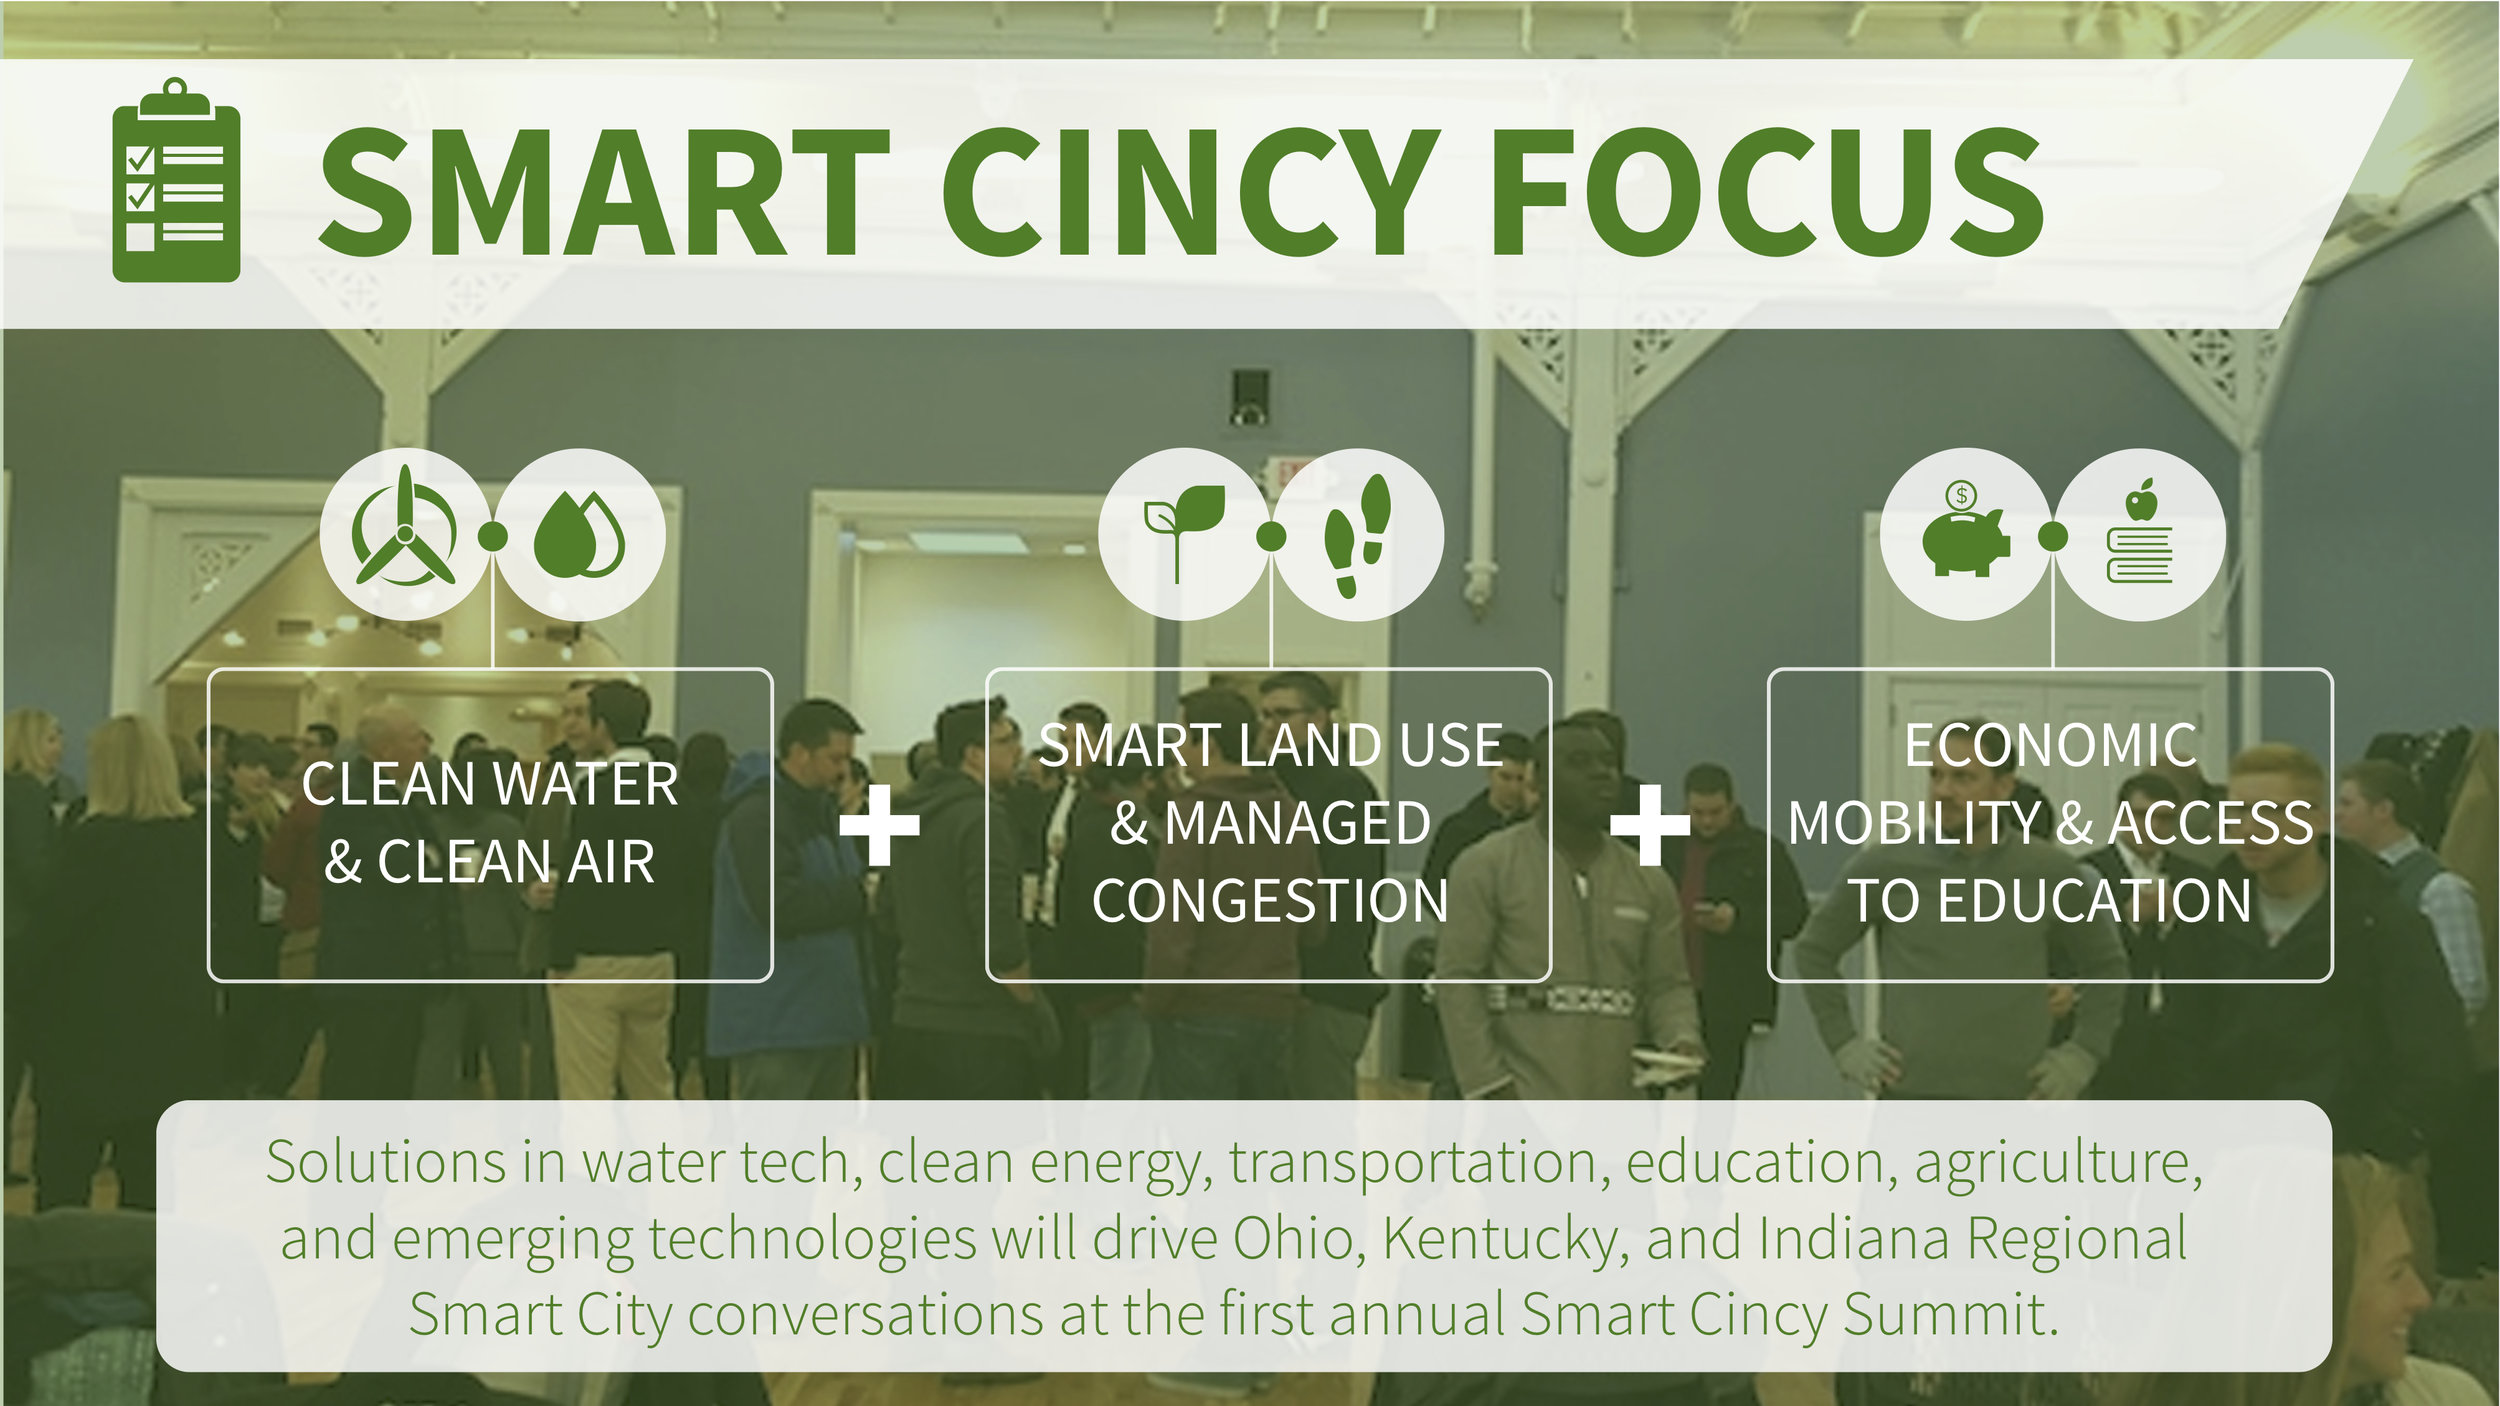 Smart Cincy Goals